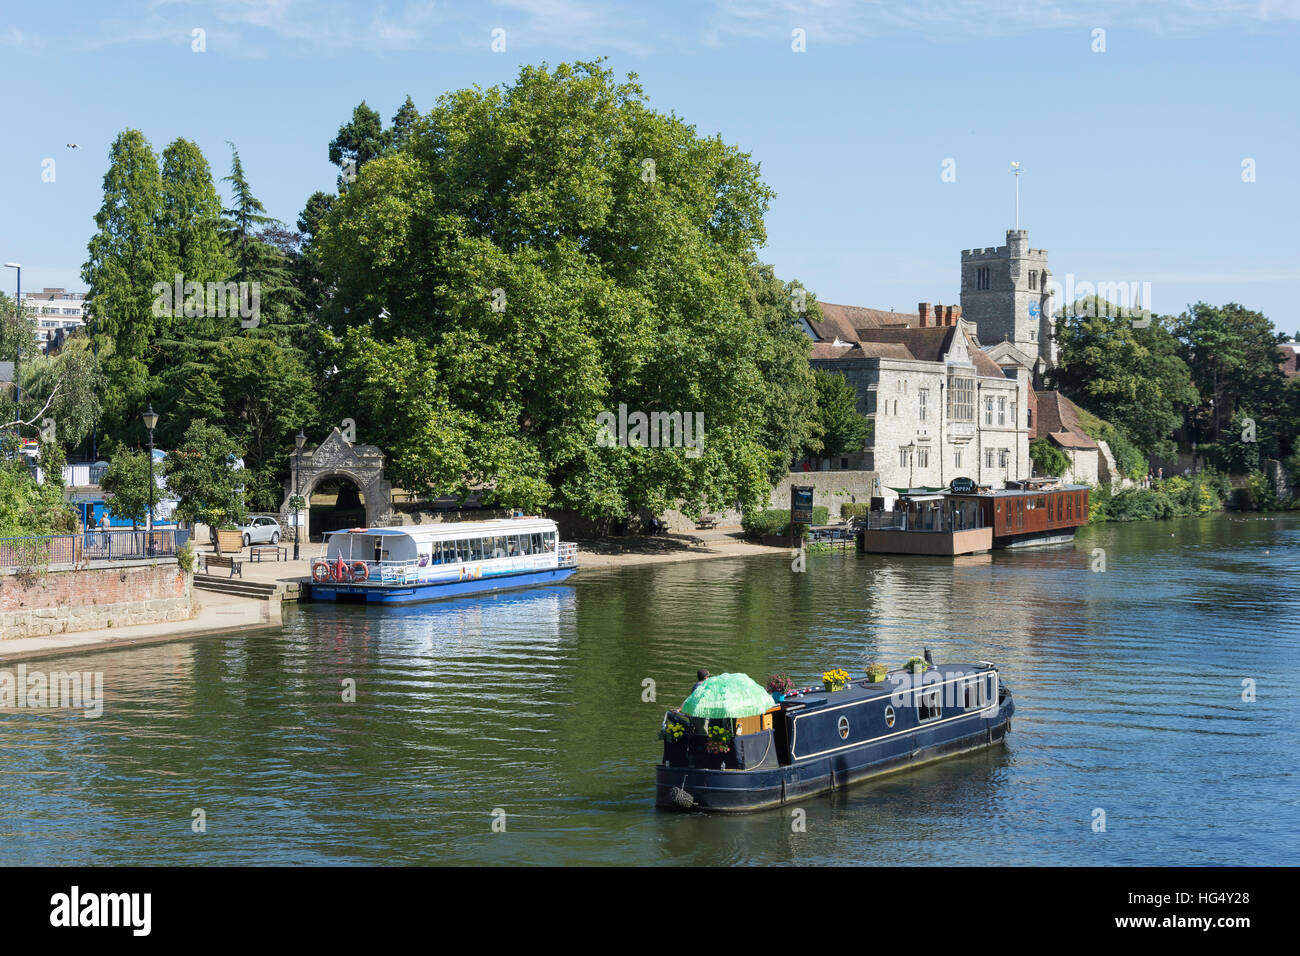 Riverside showing The Archbishop's Palace, River Medway, Maidstone, Kent, England, United Kingdom - Stock Image